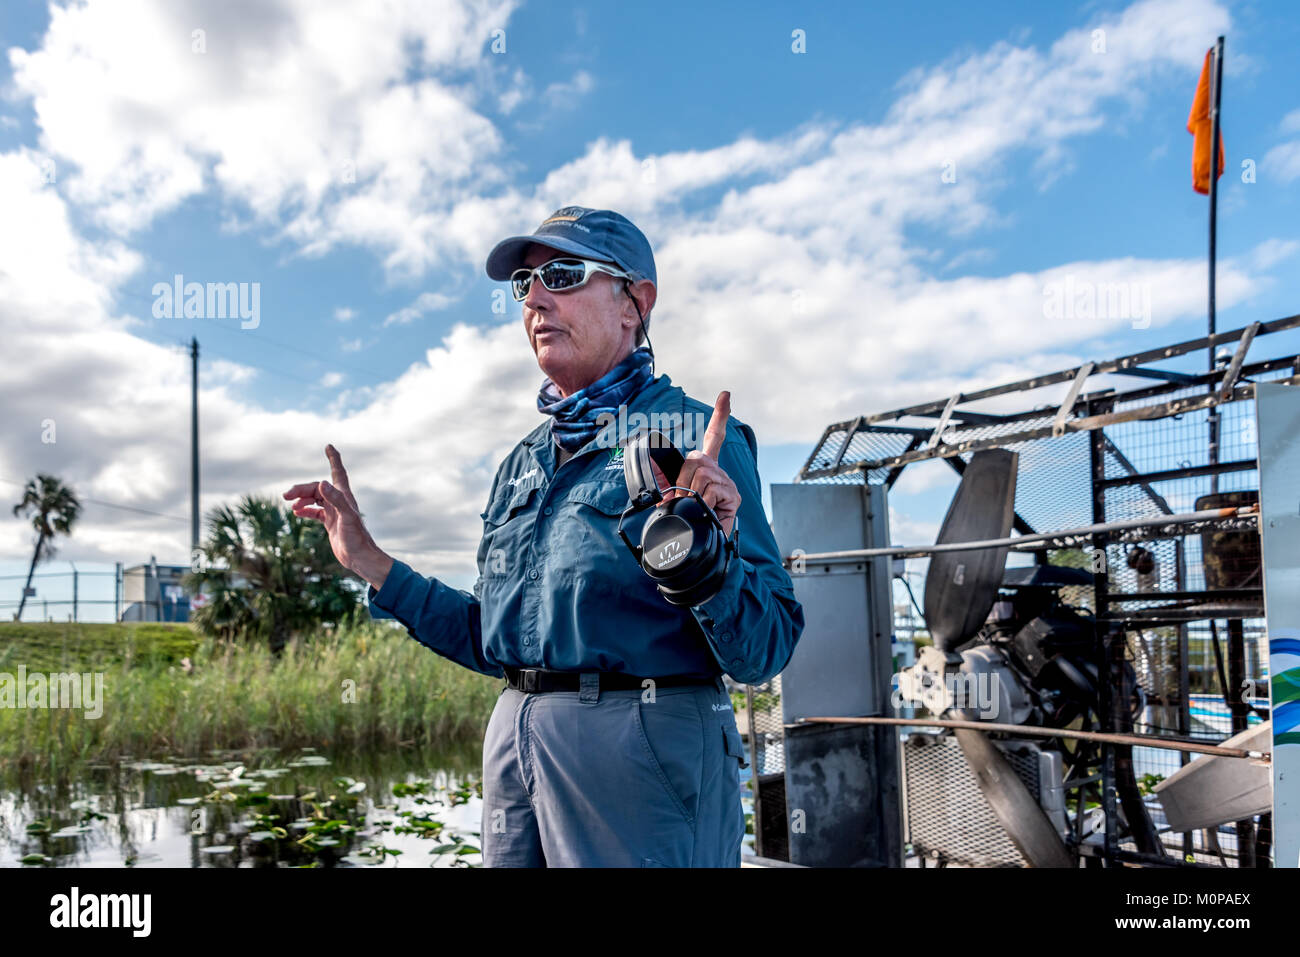 Woman airboat captain prepares her passengers at Sawgrass Recreation Park in the Florida Everglades near Fort Lauderdale. - Stock Image